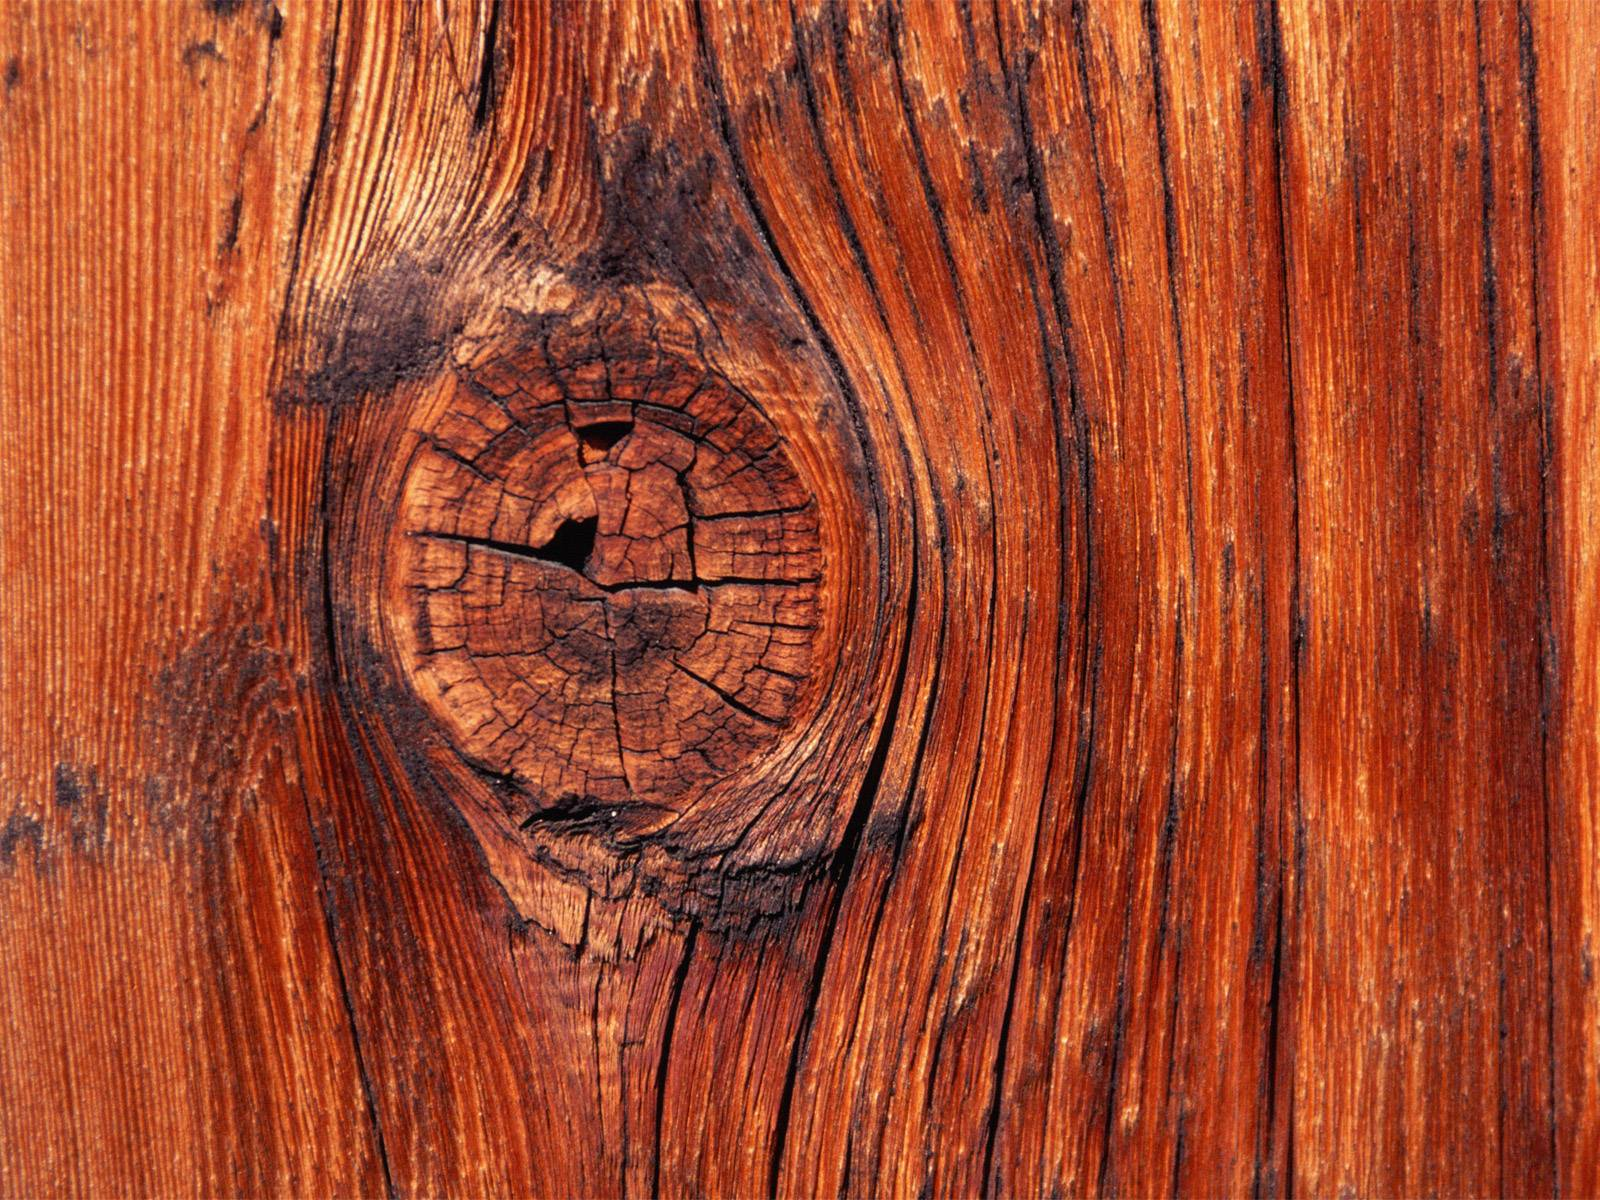 Vista Wallpapers – Textures » Vista Wallpaper Knot in the Wood